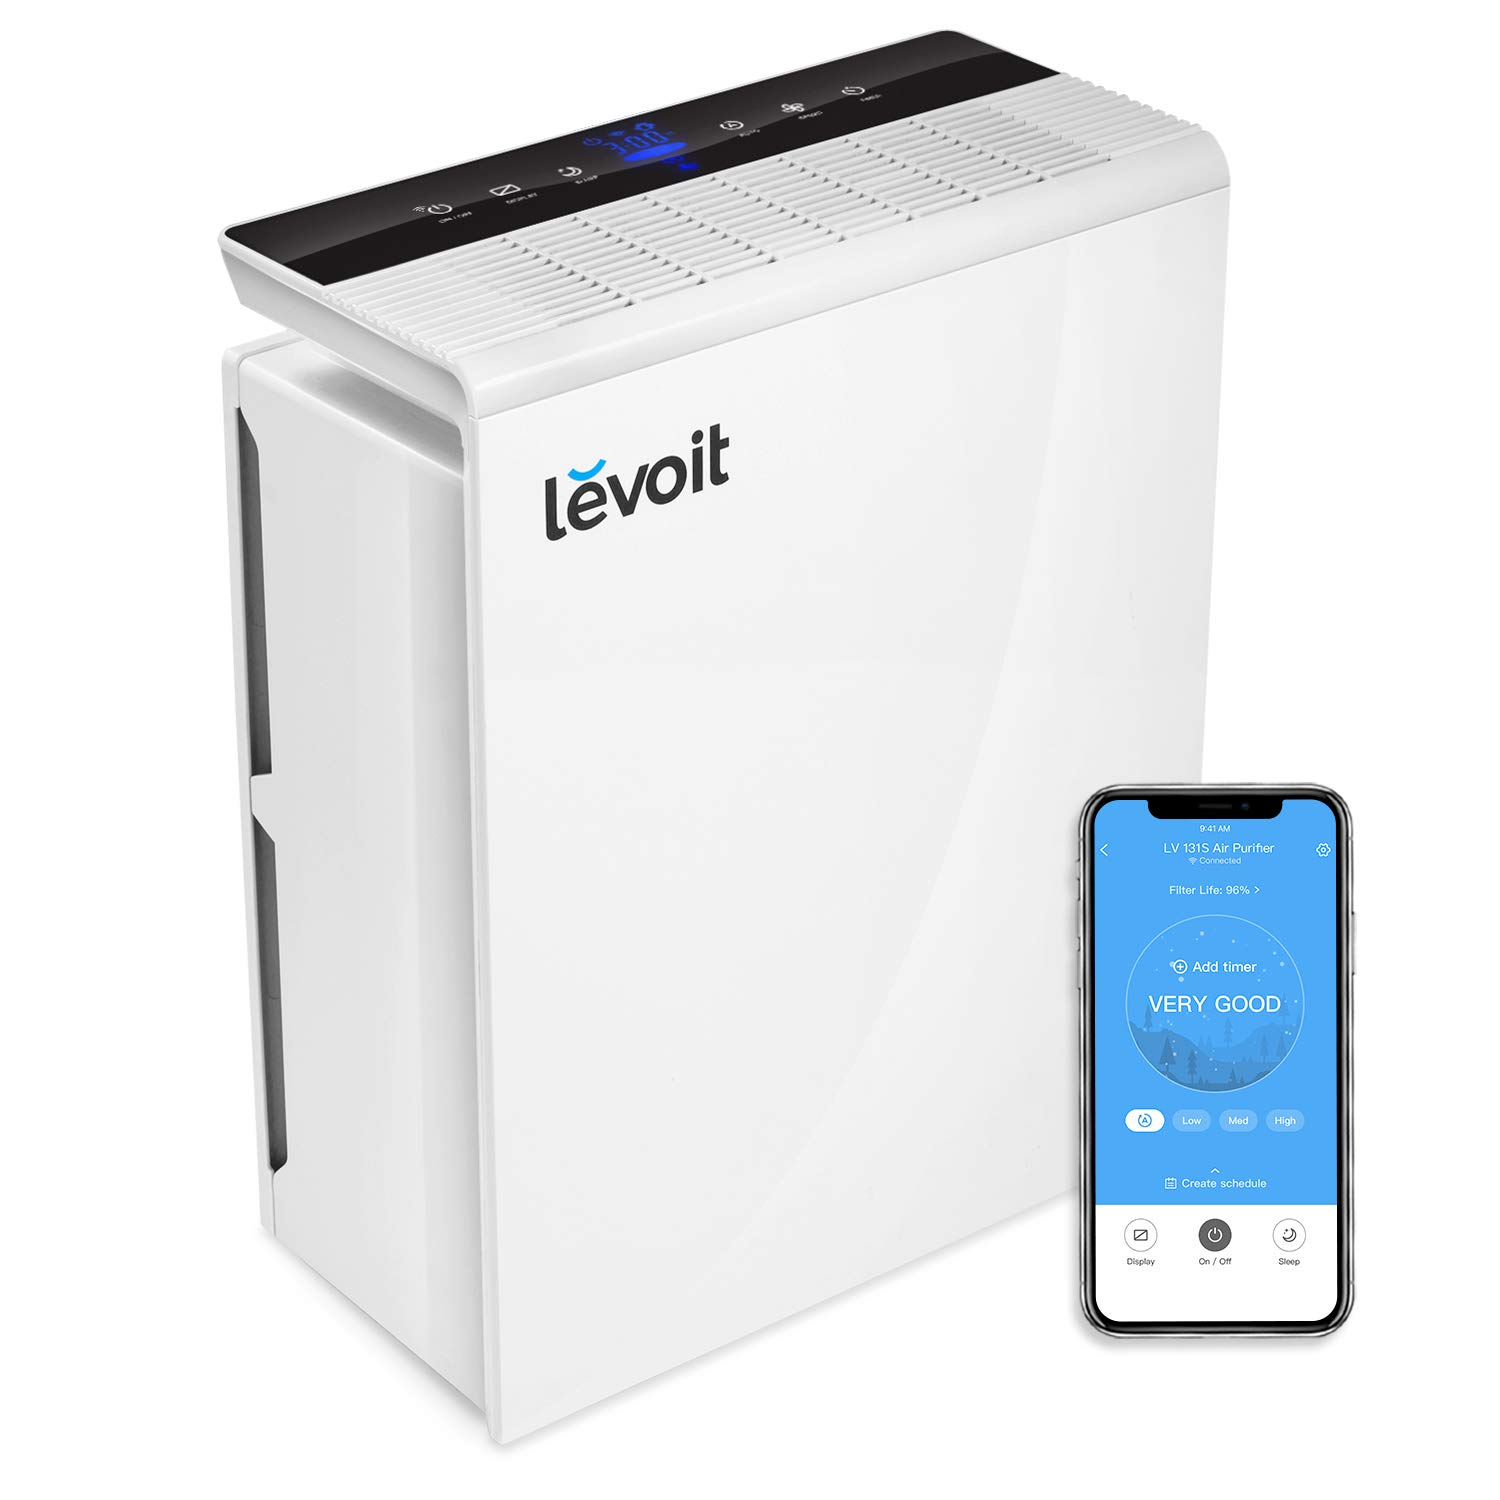 LEVOIT Smart WiFi Air Purifier for Home Large Room with True HEPA Filter, Air Cleaner for Allergies and Pets, Smokers,...